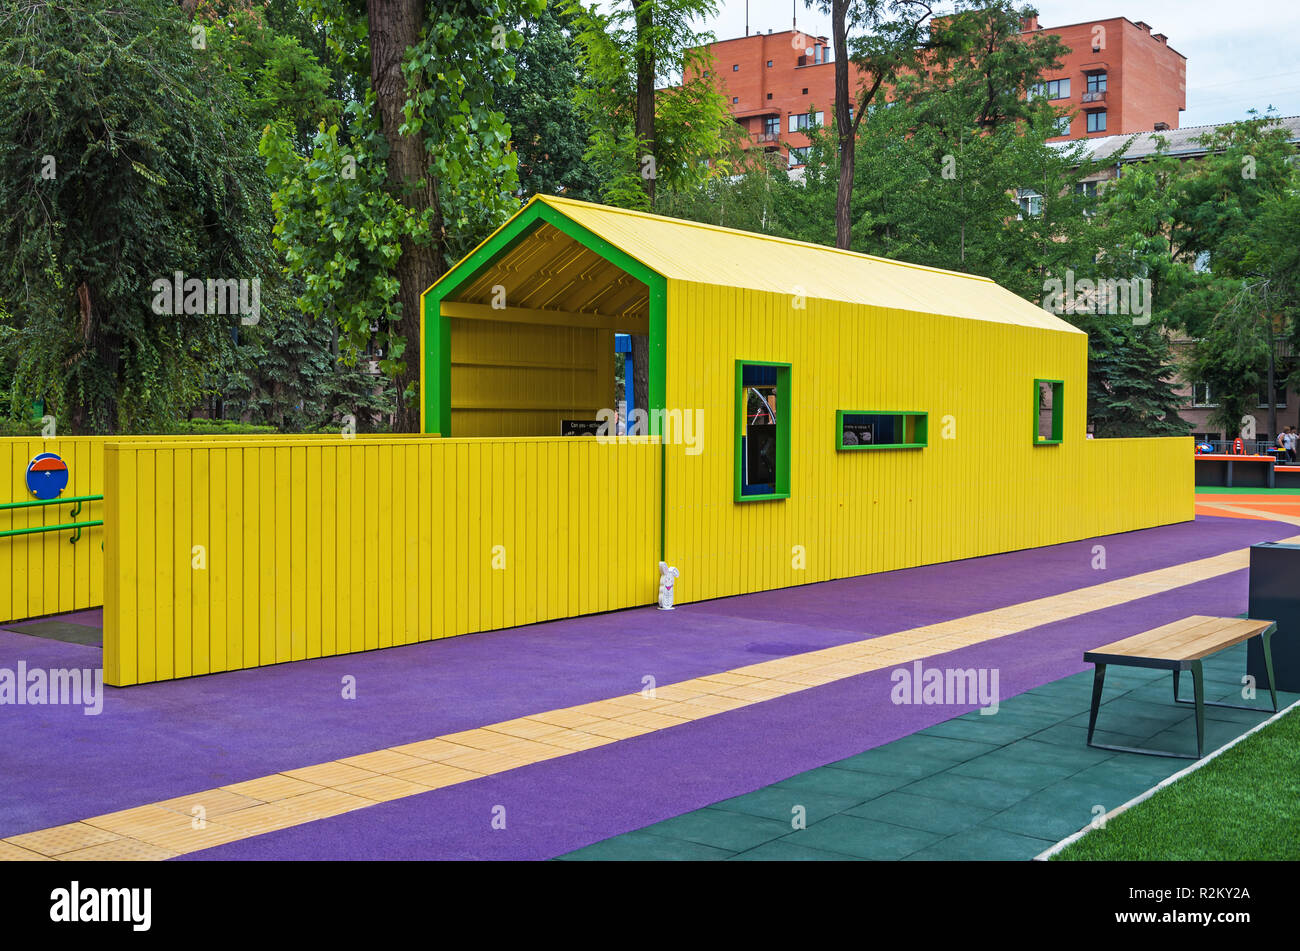 Childrens play house in yellow color in the inclusive municipal park - Stock Image